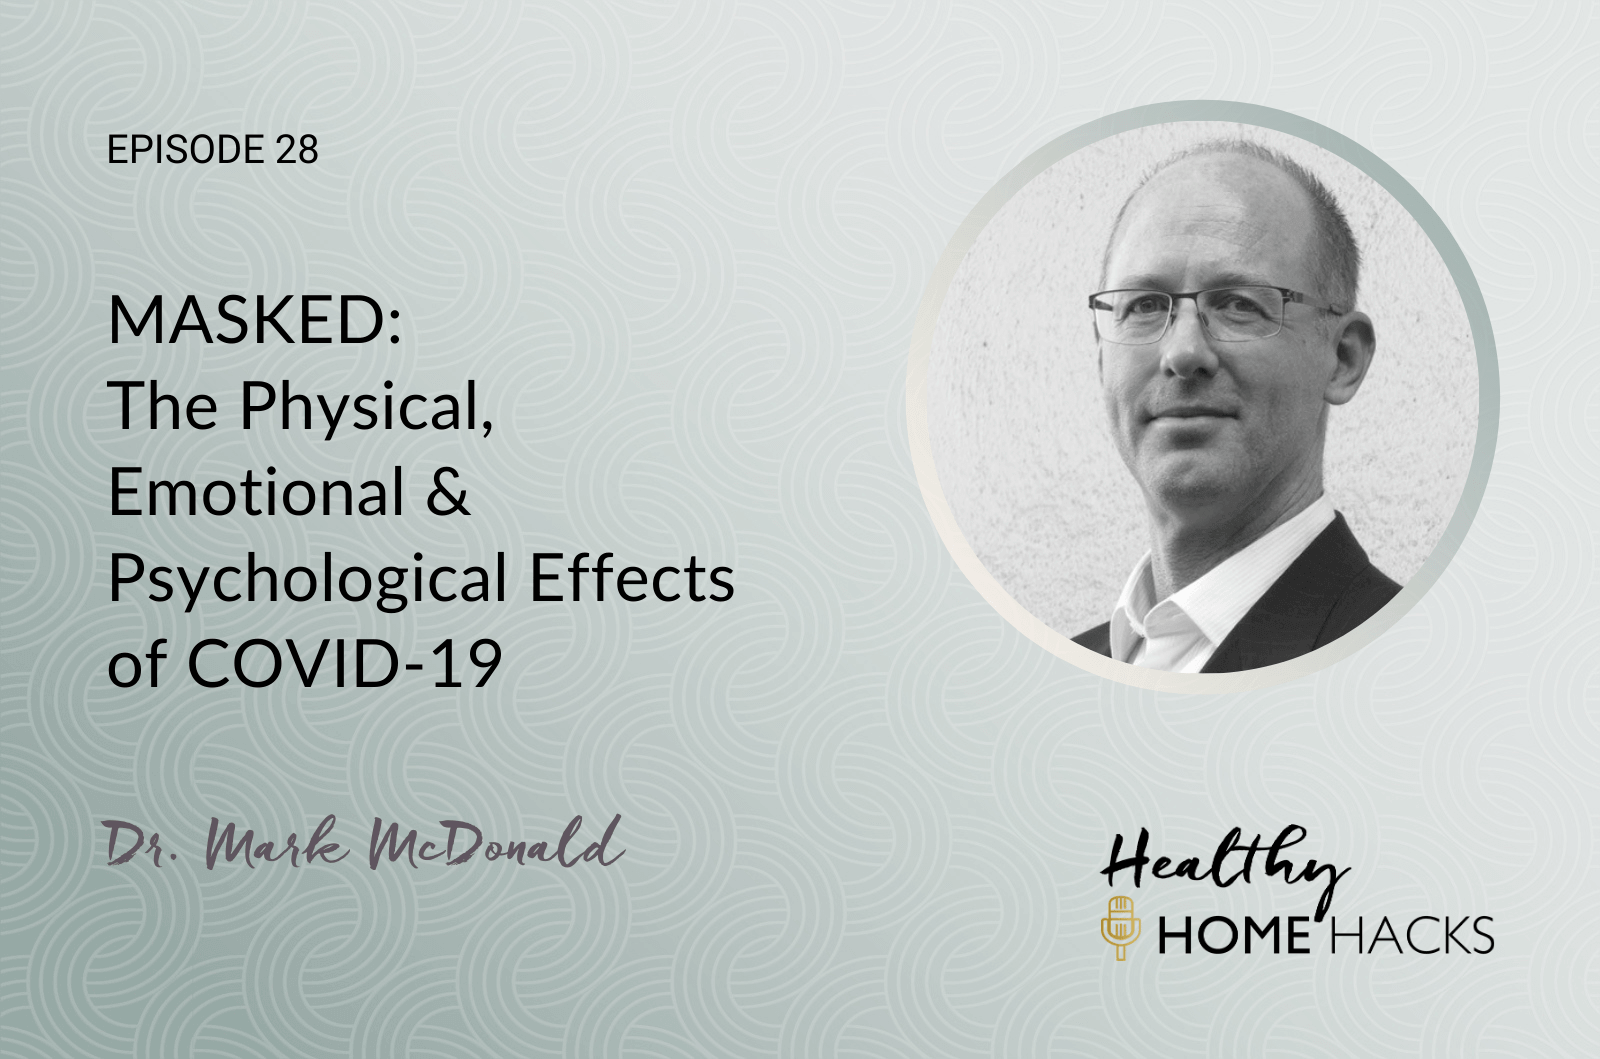 28: MASKED: The Physical, Emotional & Psychological Effects of COVID-19